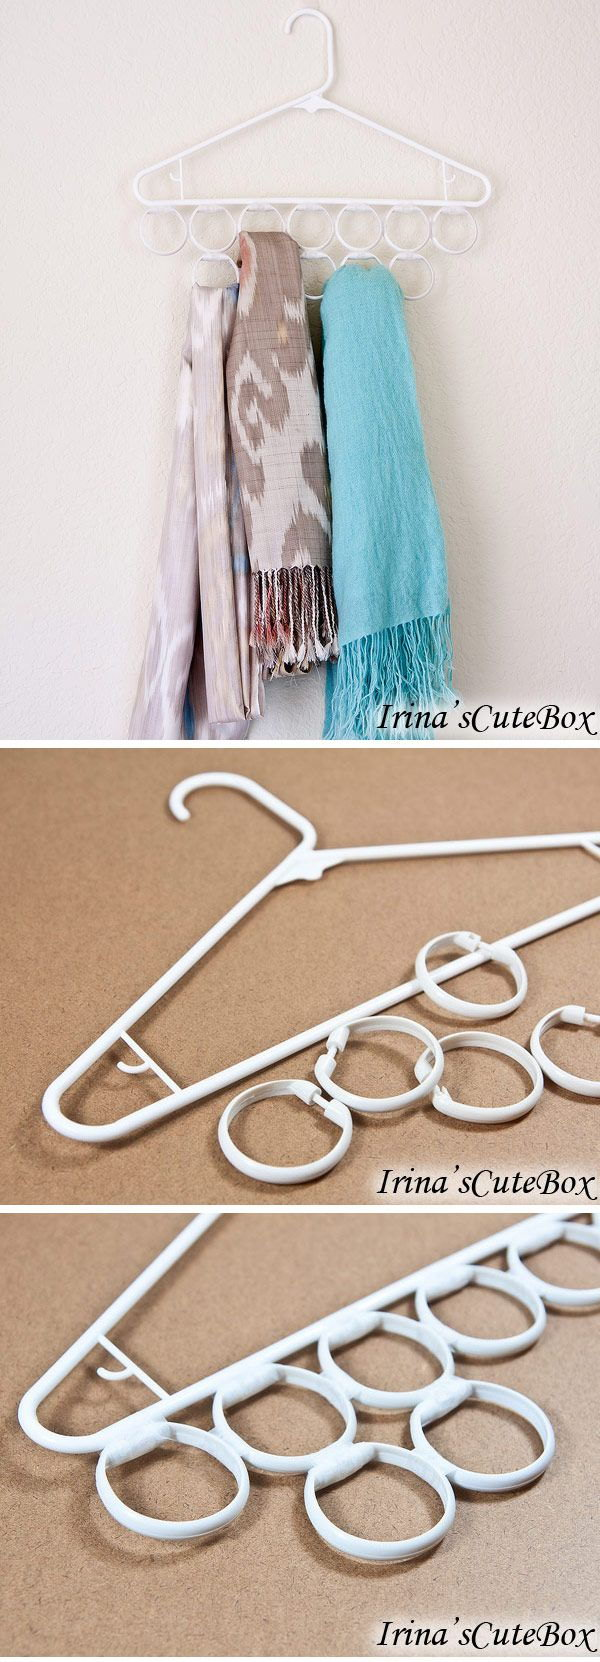 Inexpensive Scarves Holder Made out of a Hanger and Shower Curtain Rings & 40+ Clever Closet Storage and Organization Ideas - Hative